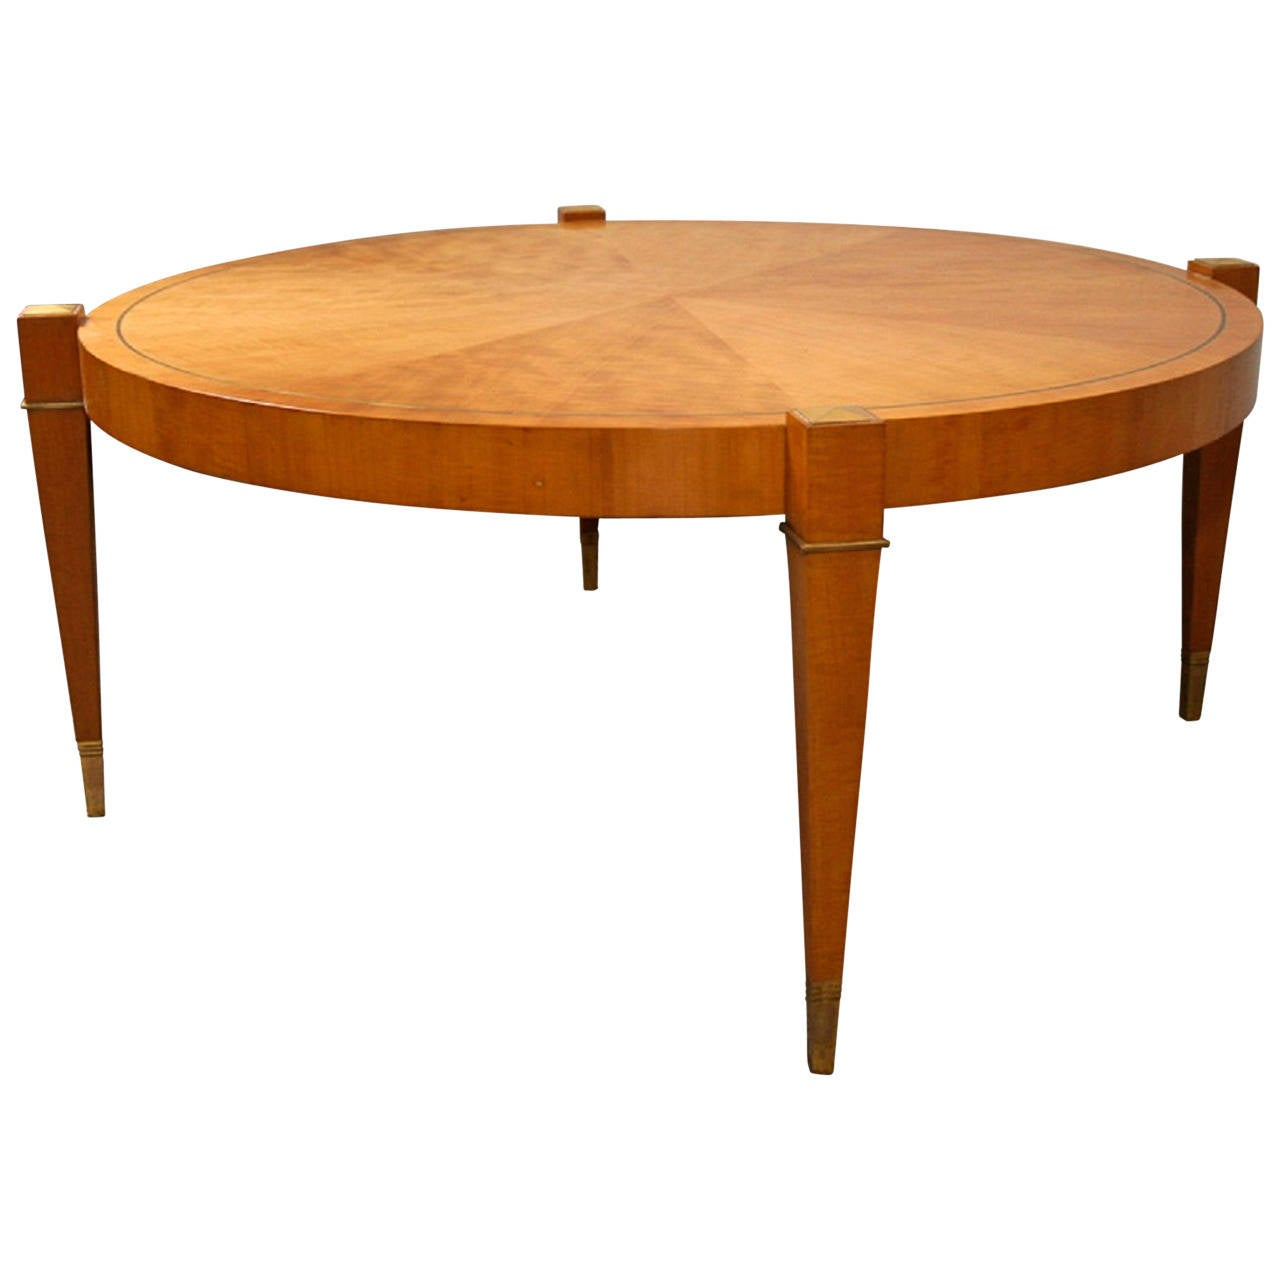 Custom Made Low Coffee Table By Albano American 1950s At 1stdibs